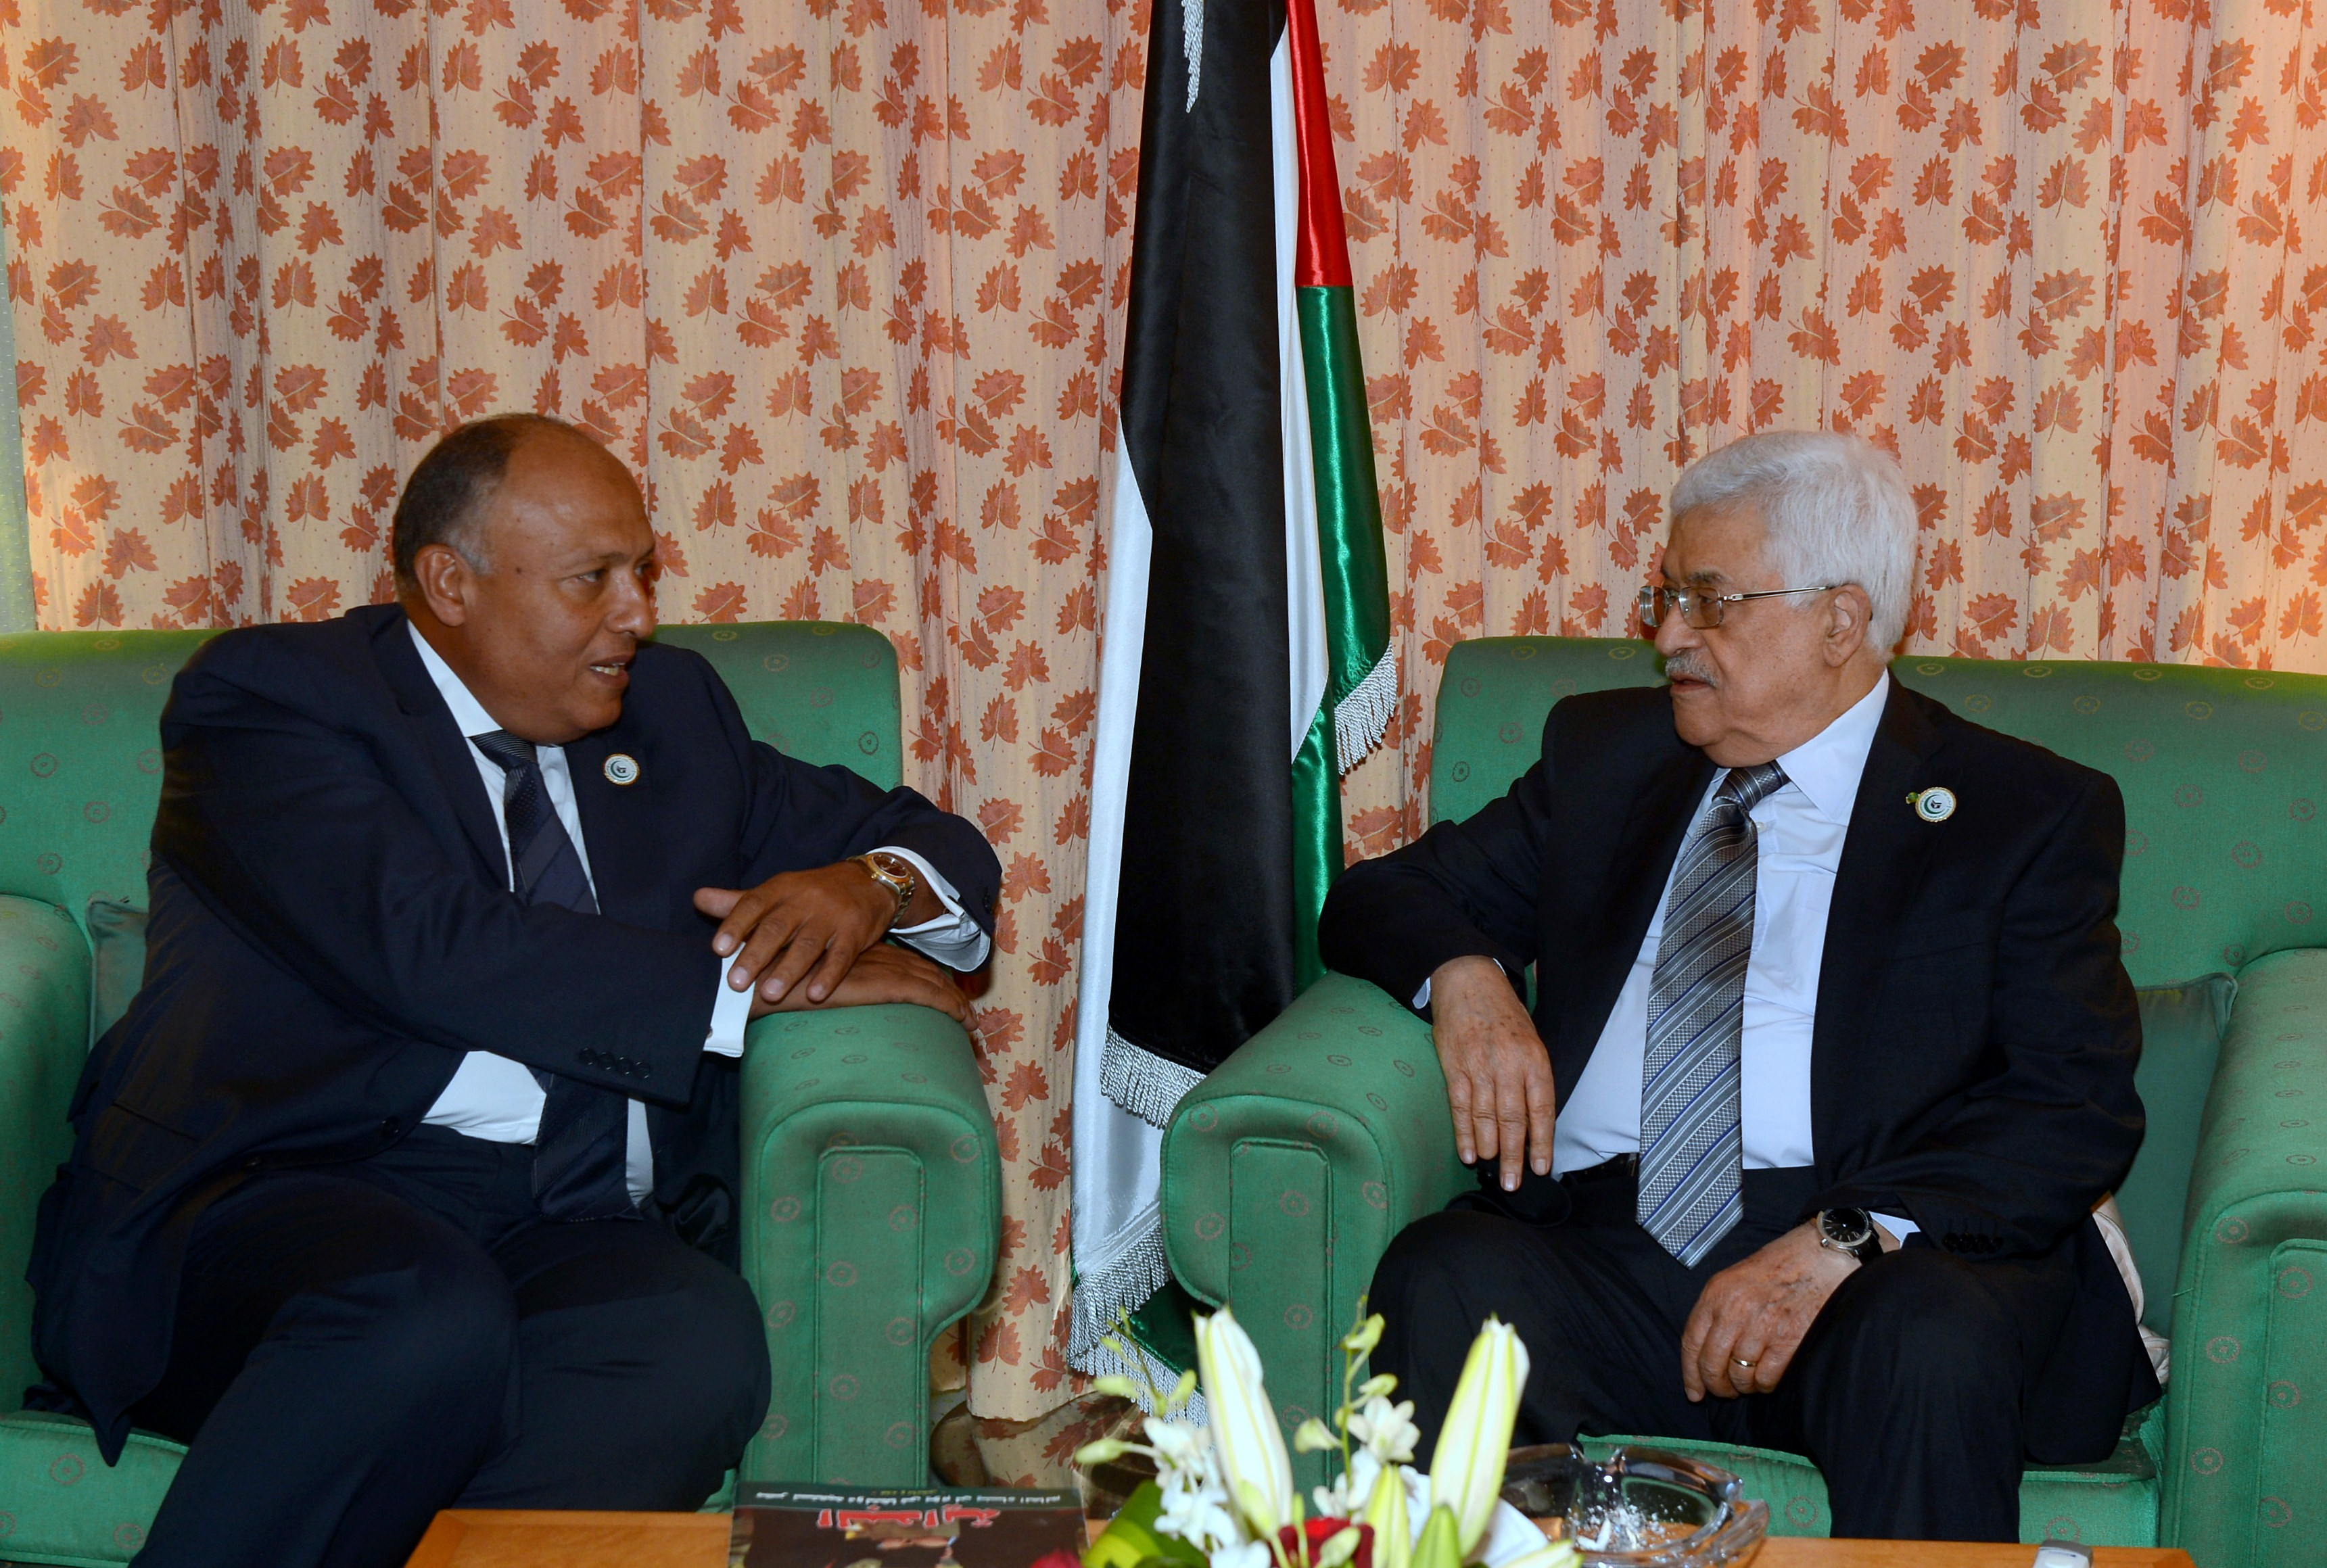 Palestinian president Mahmoud Abbas (R) meets new Egyptian Foreign Minister Sameh Shoukry in Jeddah in the sidelines of the meeting of the Organisation of Islamic Cooperation in Jeddah, on June 18, 2014.  (AFP PHOTO/ PPO / THAER GHANAIM )